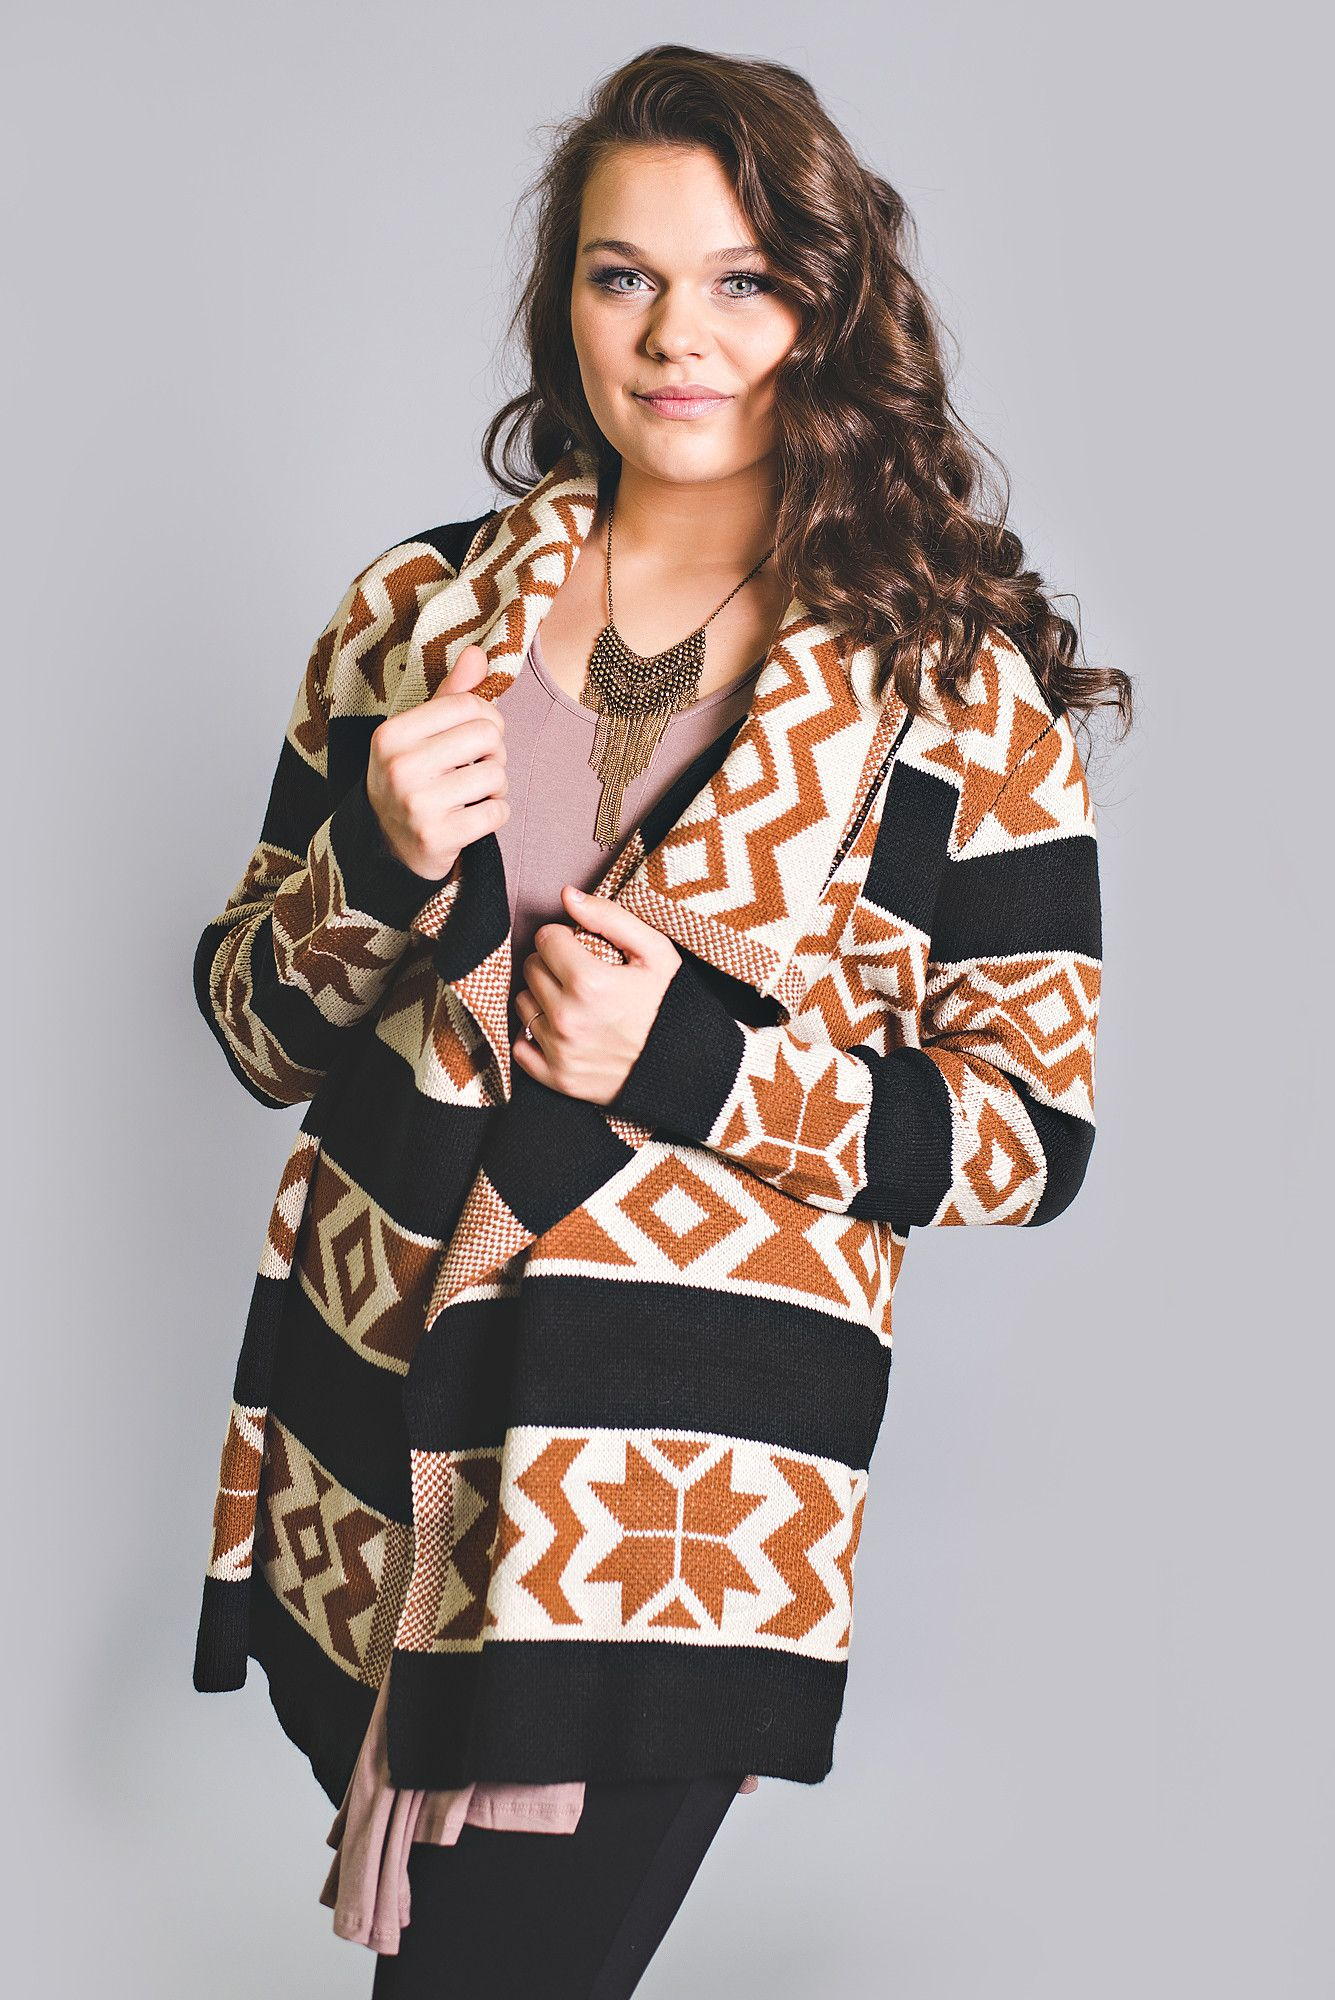 Down In Texas Aztec Printed Sweater - NanaMacsBoutique